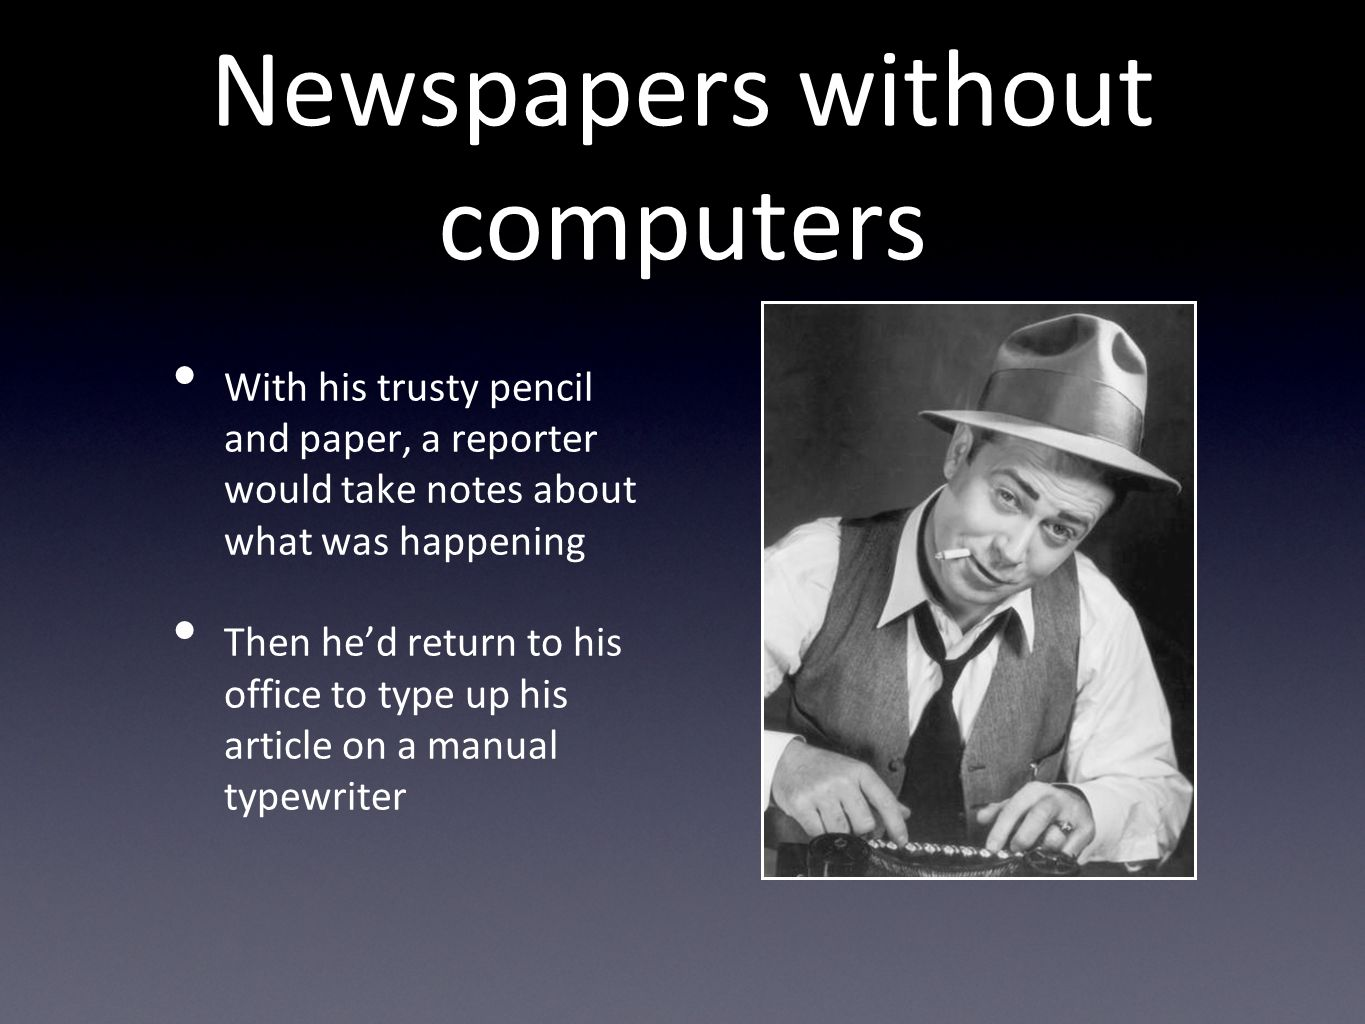 Newspapers without computers With his trusty pencil and paper, a reporter would take notes about what was happening Then hed return to his office to type up his article on a manual typewriter